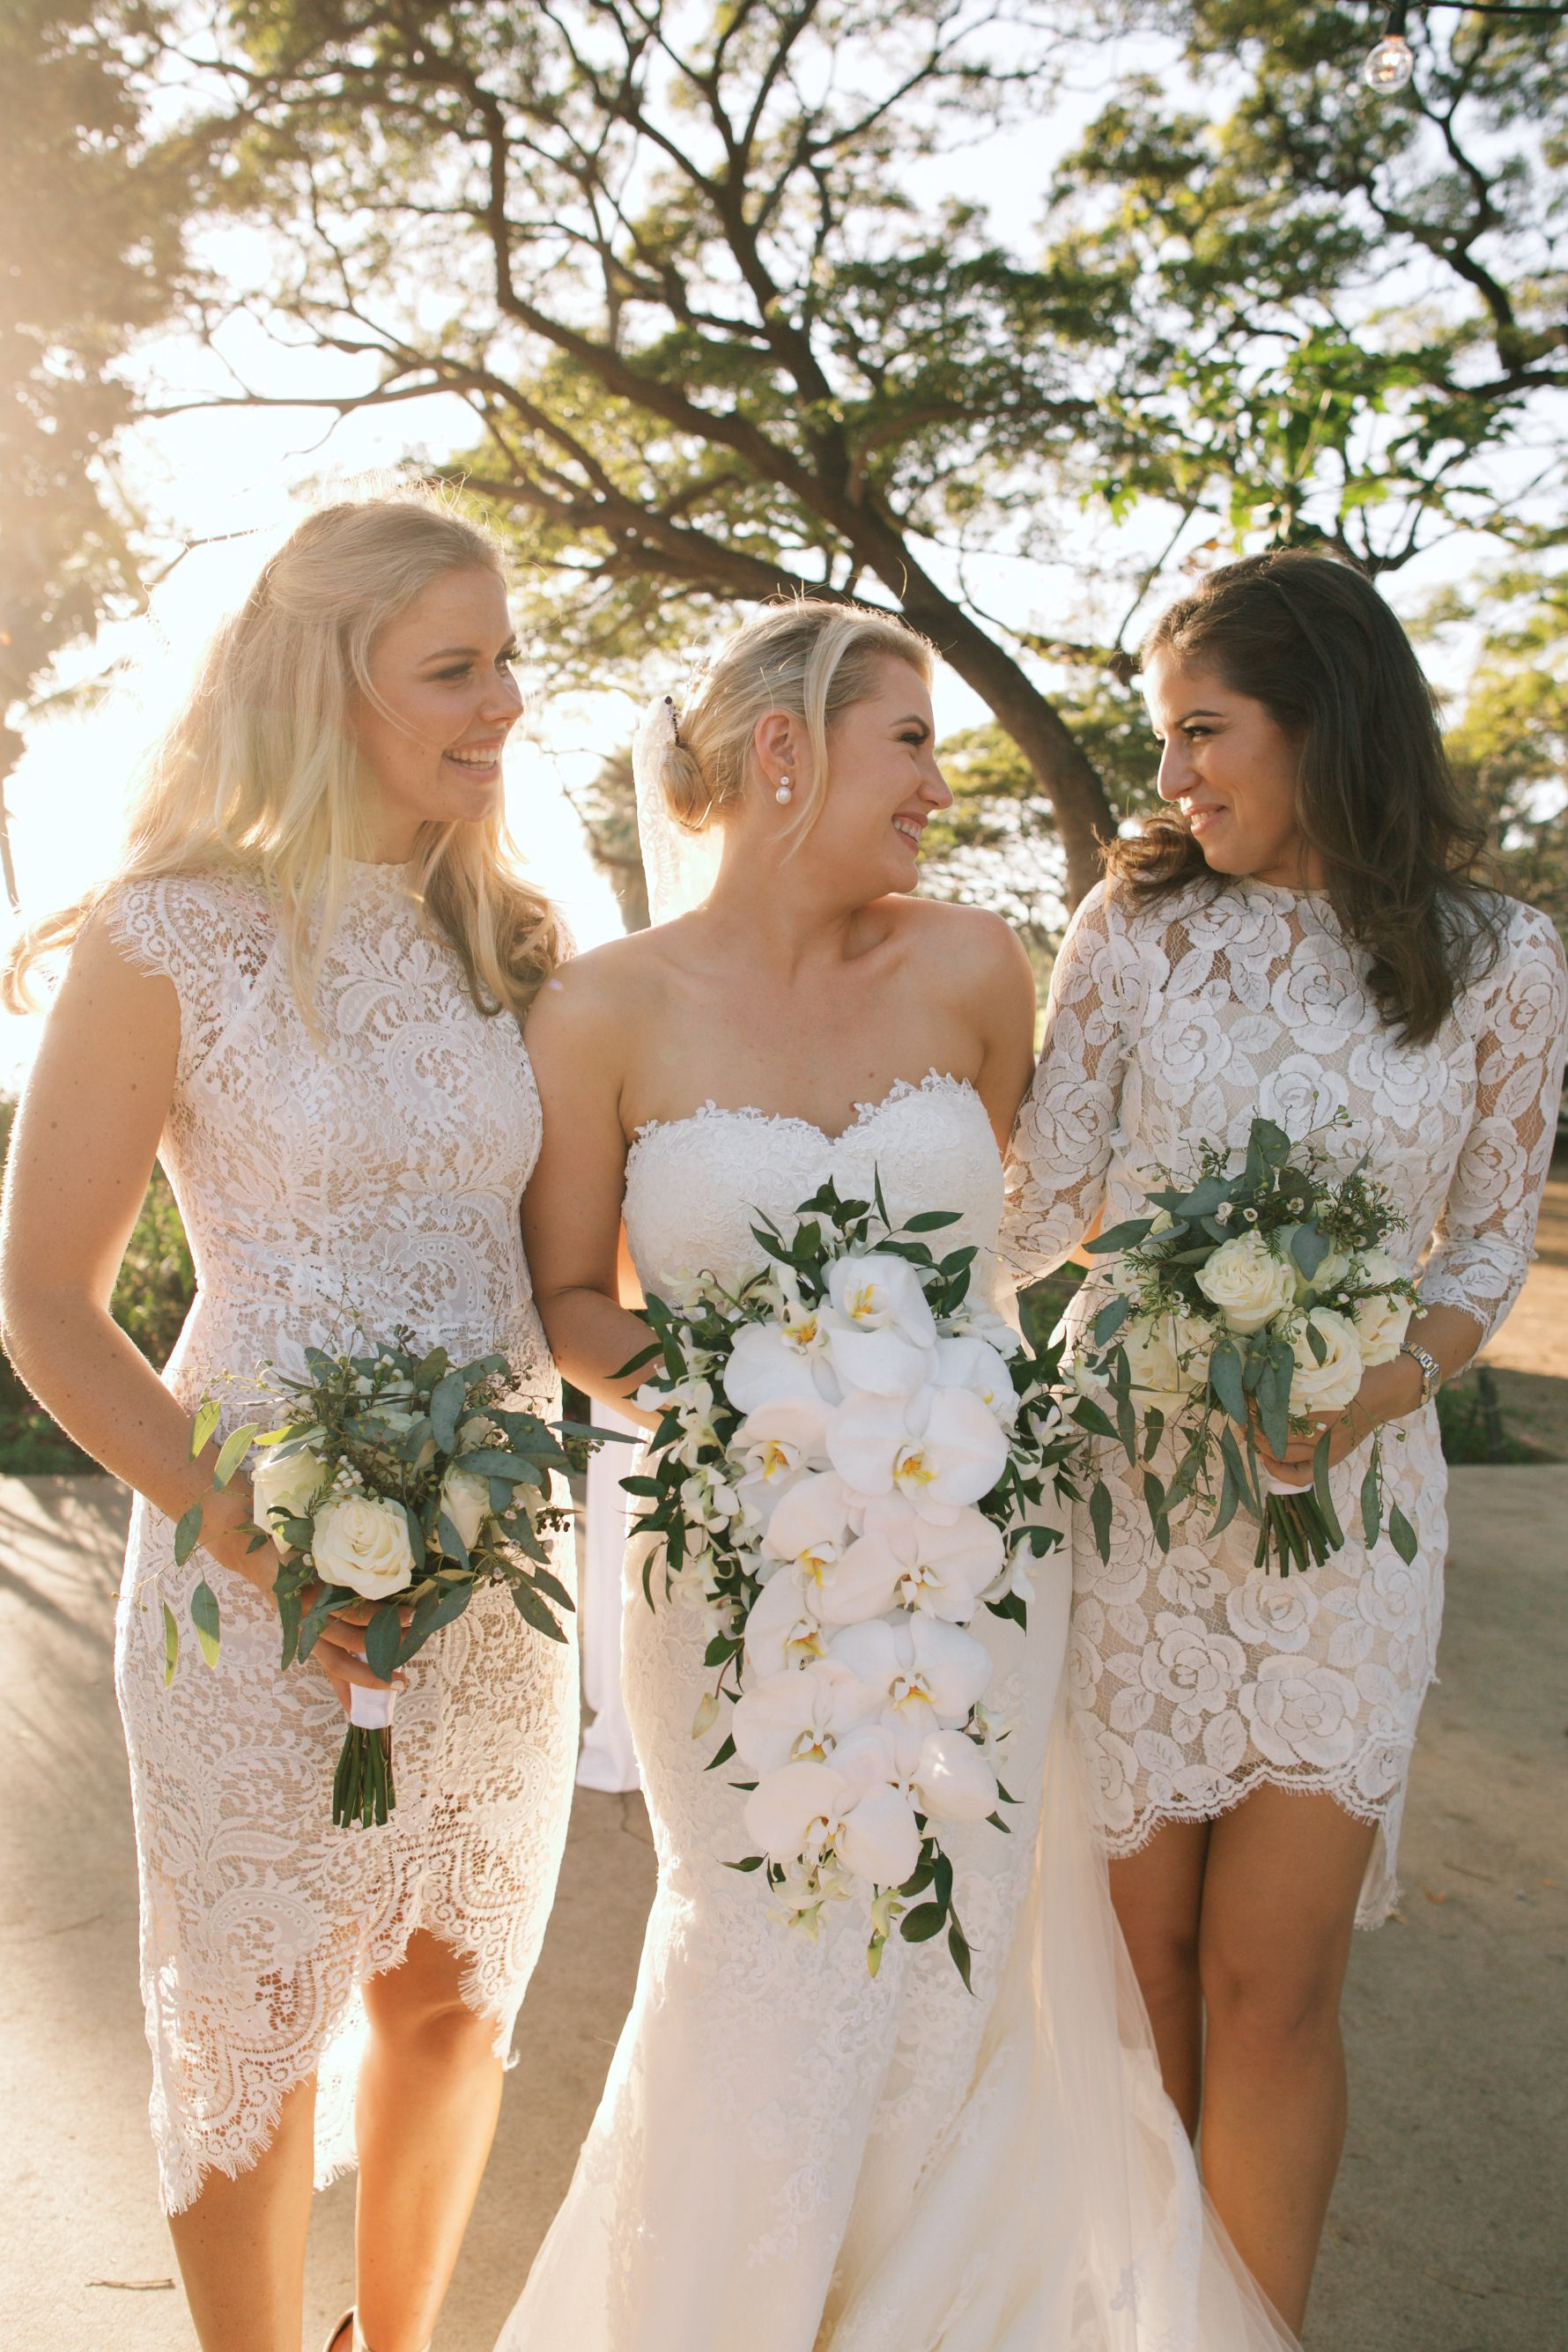 Bride With A Cascade Bouquet And Her Bridesmaids With Hand Tied